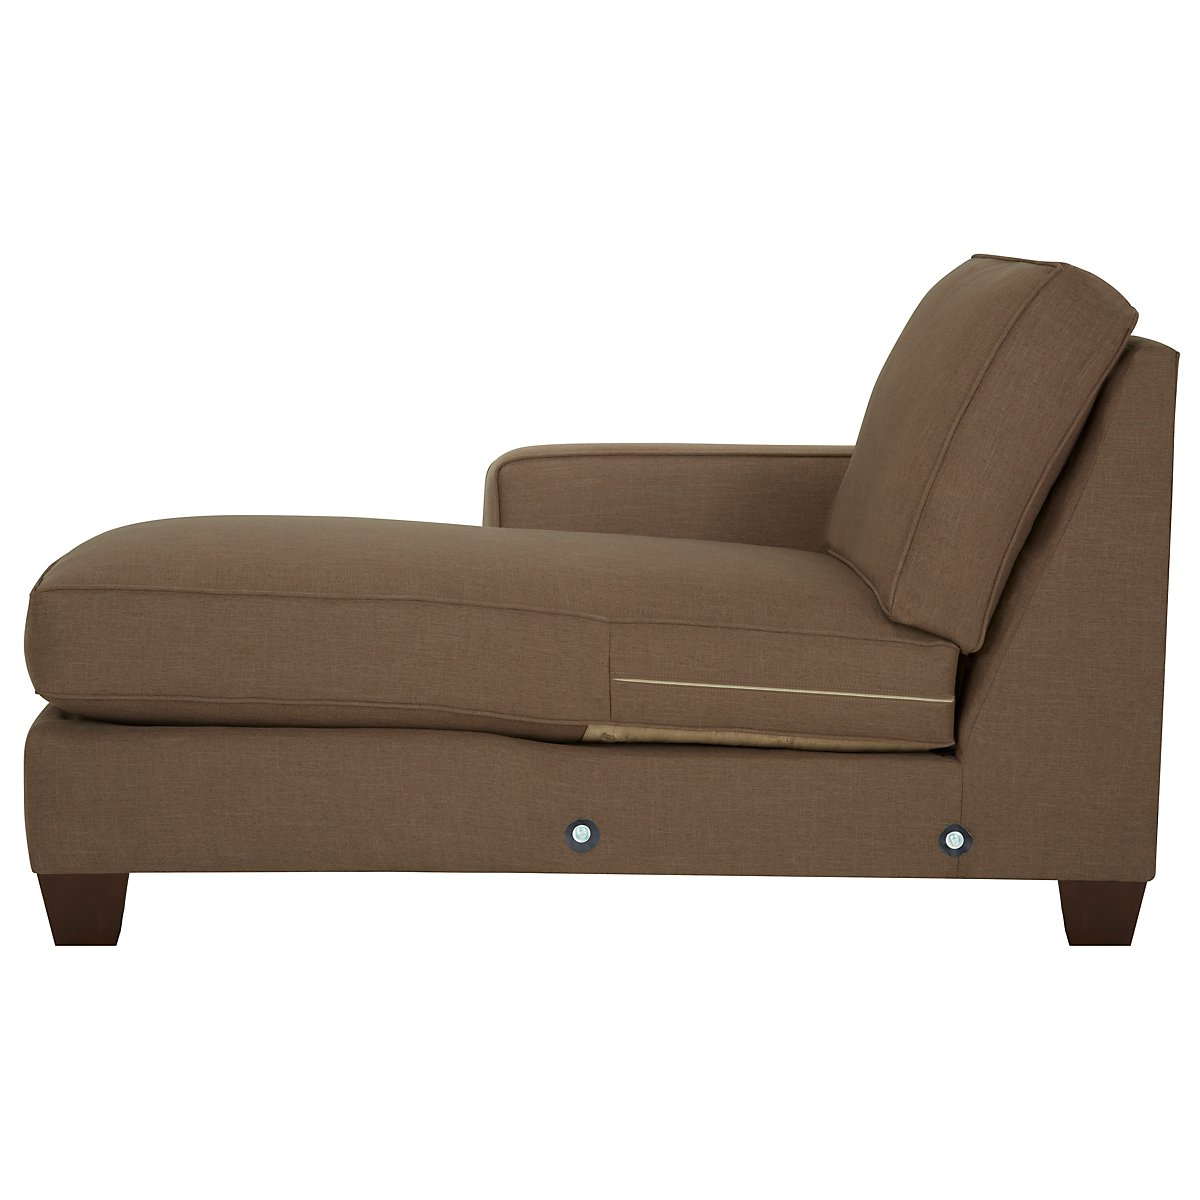 City furniture york dk brown fabric large left chaise for Brown sectional with chaise